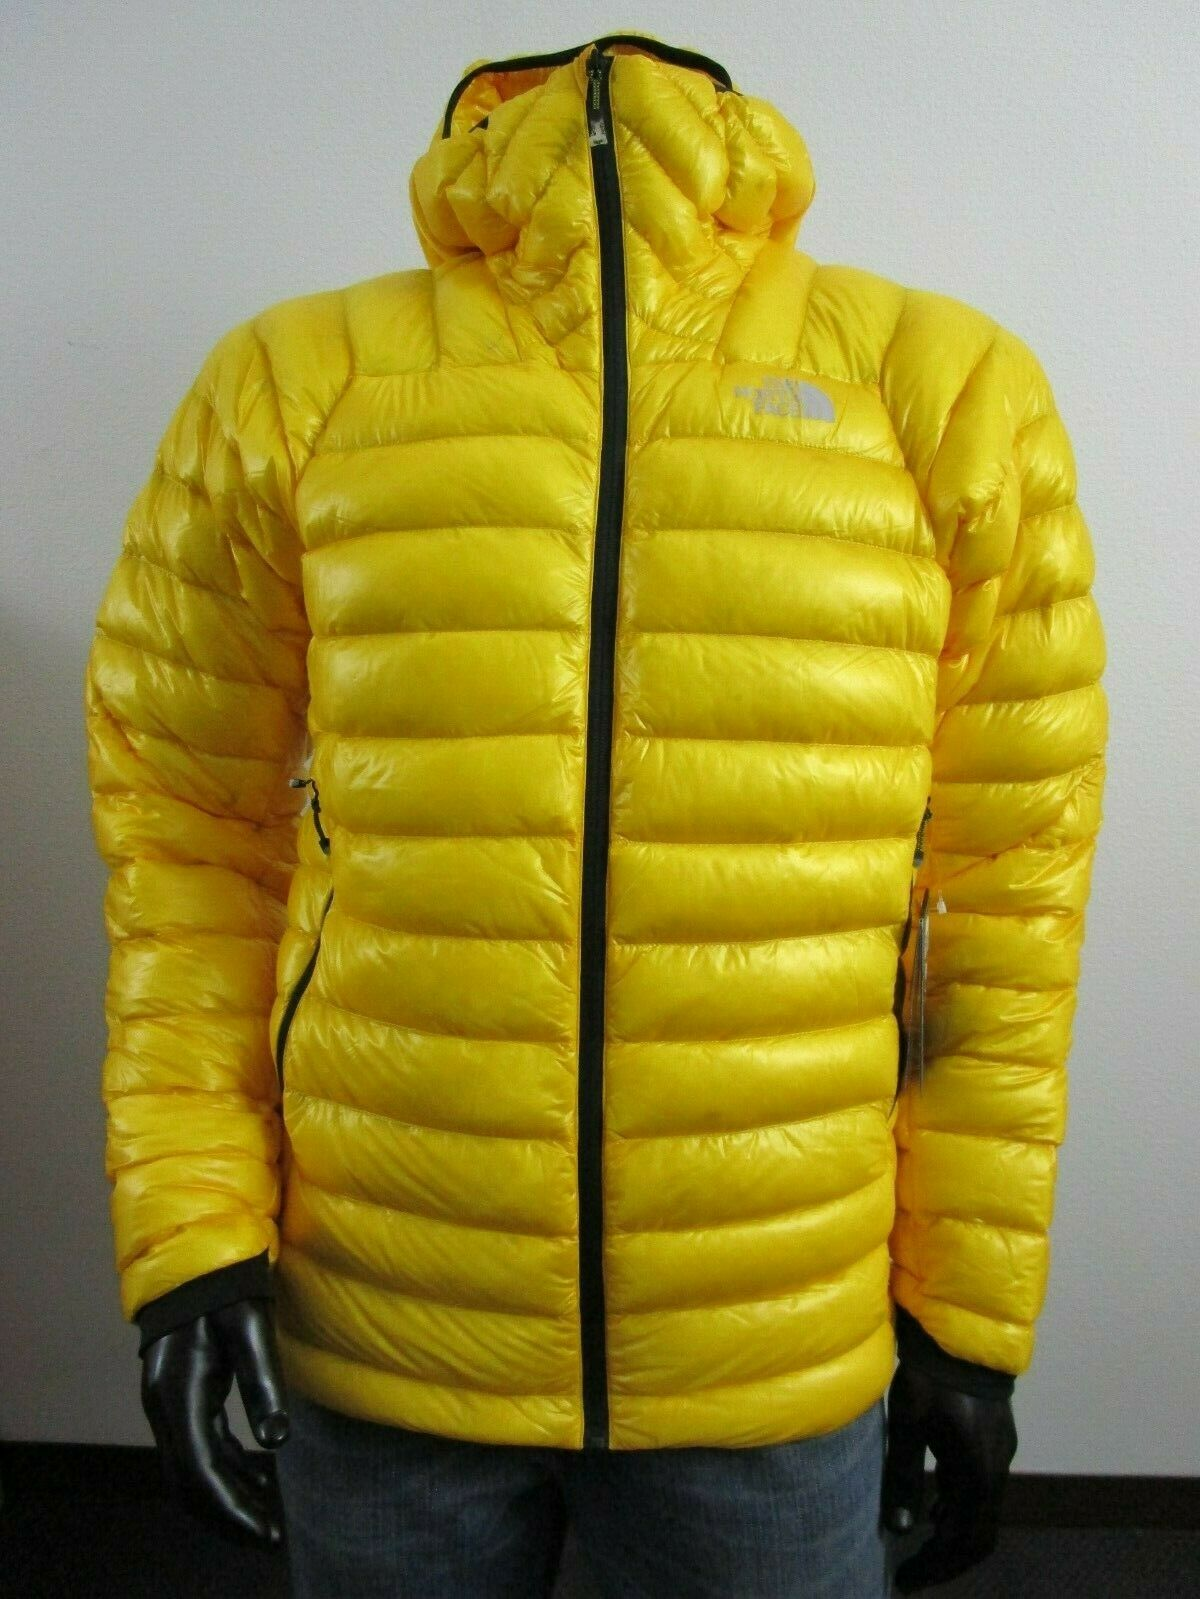 NWT Mens TNF The North Face L3 Ventrix Hooded Insulated Climbing Jacket Yellow